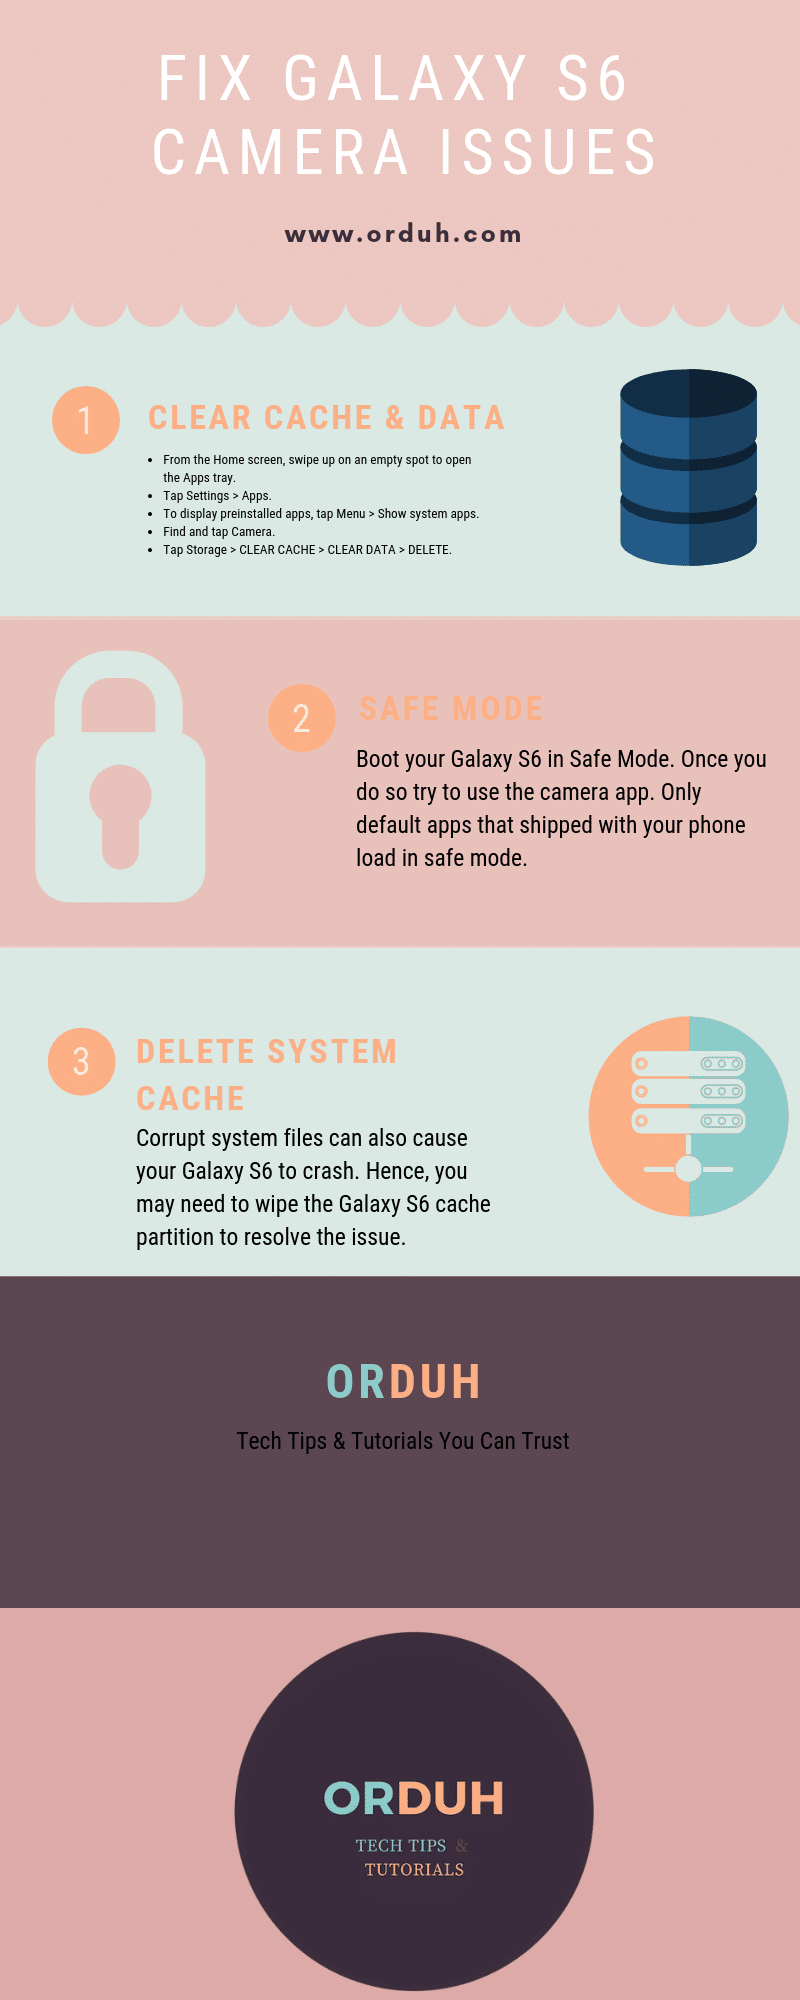 Tips To Fix Unfortunately Camera Has Stopped Galaxy S6 - An Infographic